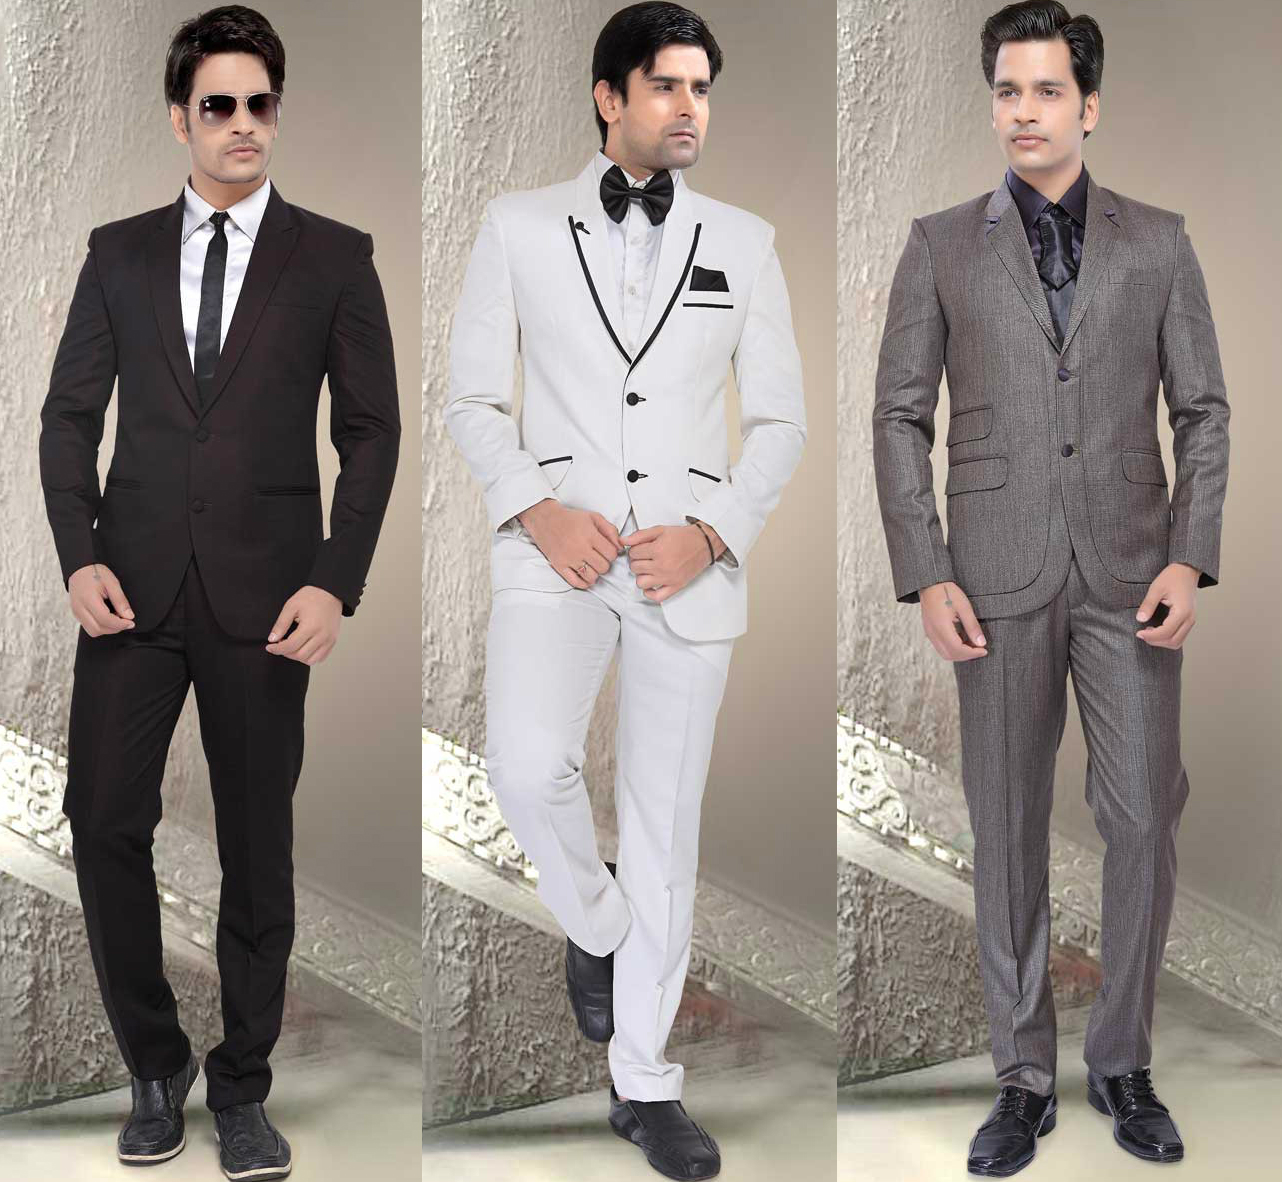 Men\'s Fashion - What To Wear For A Wedding | SoPosted.com